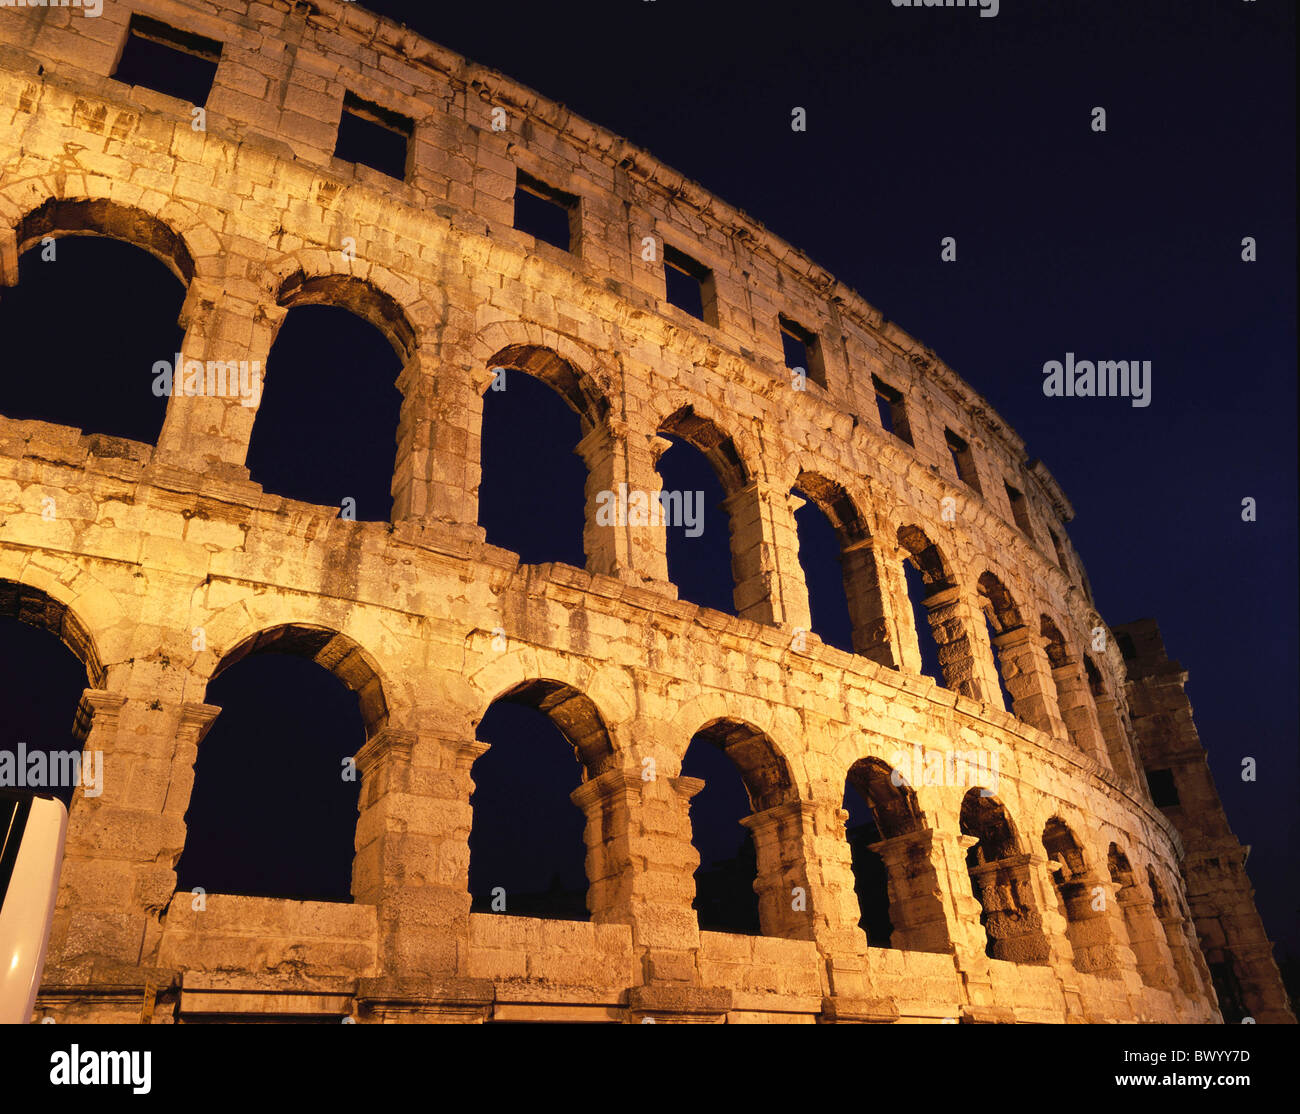 amphitheater Ancient world antiquity arcades detail facade historical Istria Croatia night at night Roman - Stock Image